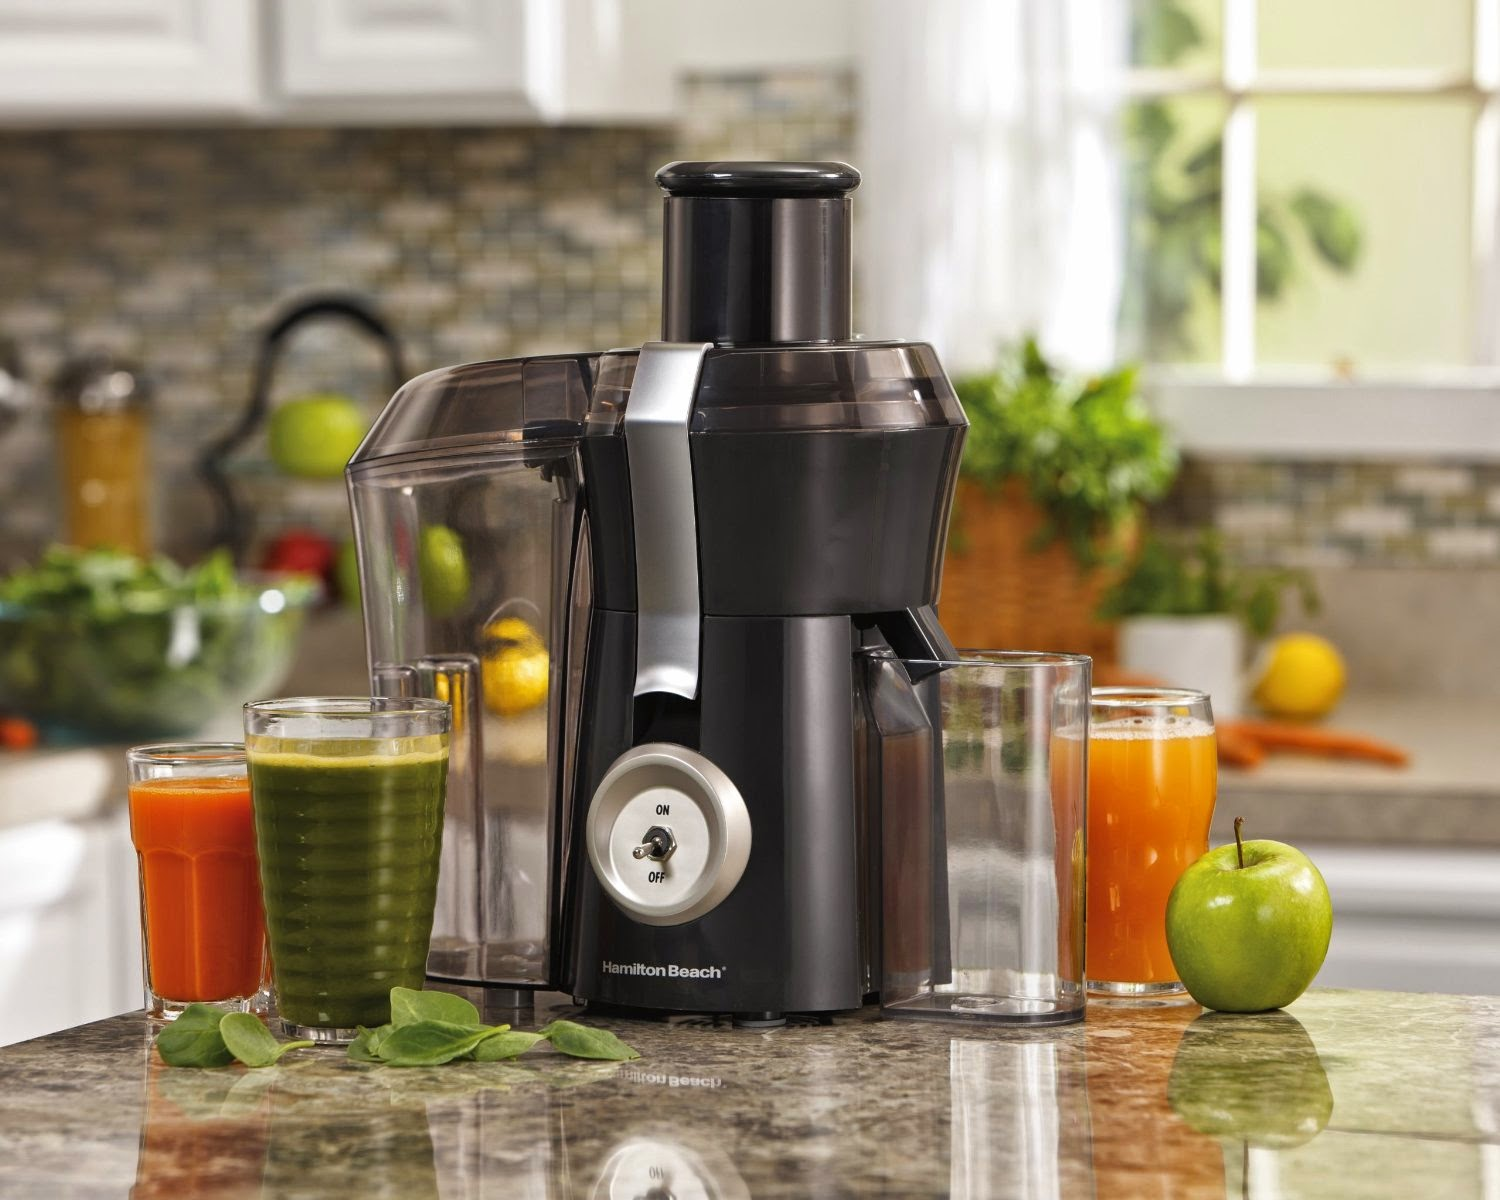 Hamilton Beach 67650A Big Mouth Pro Juice Extractor, picture, image, review features and specifications